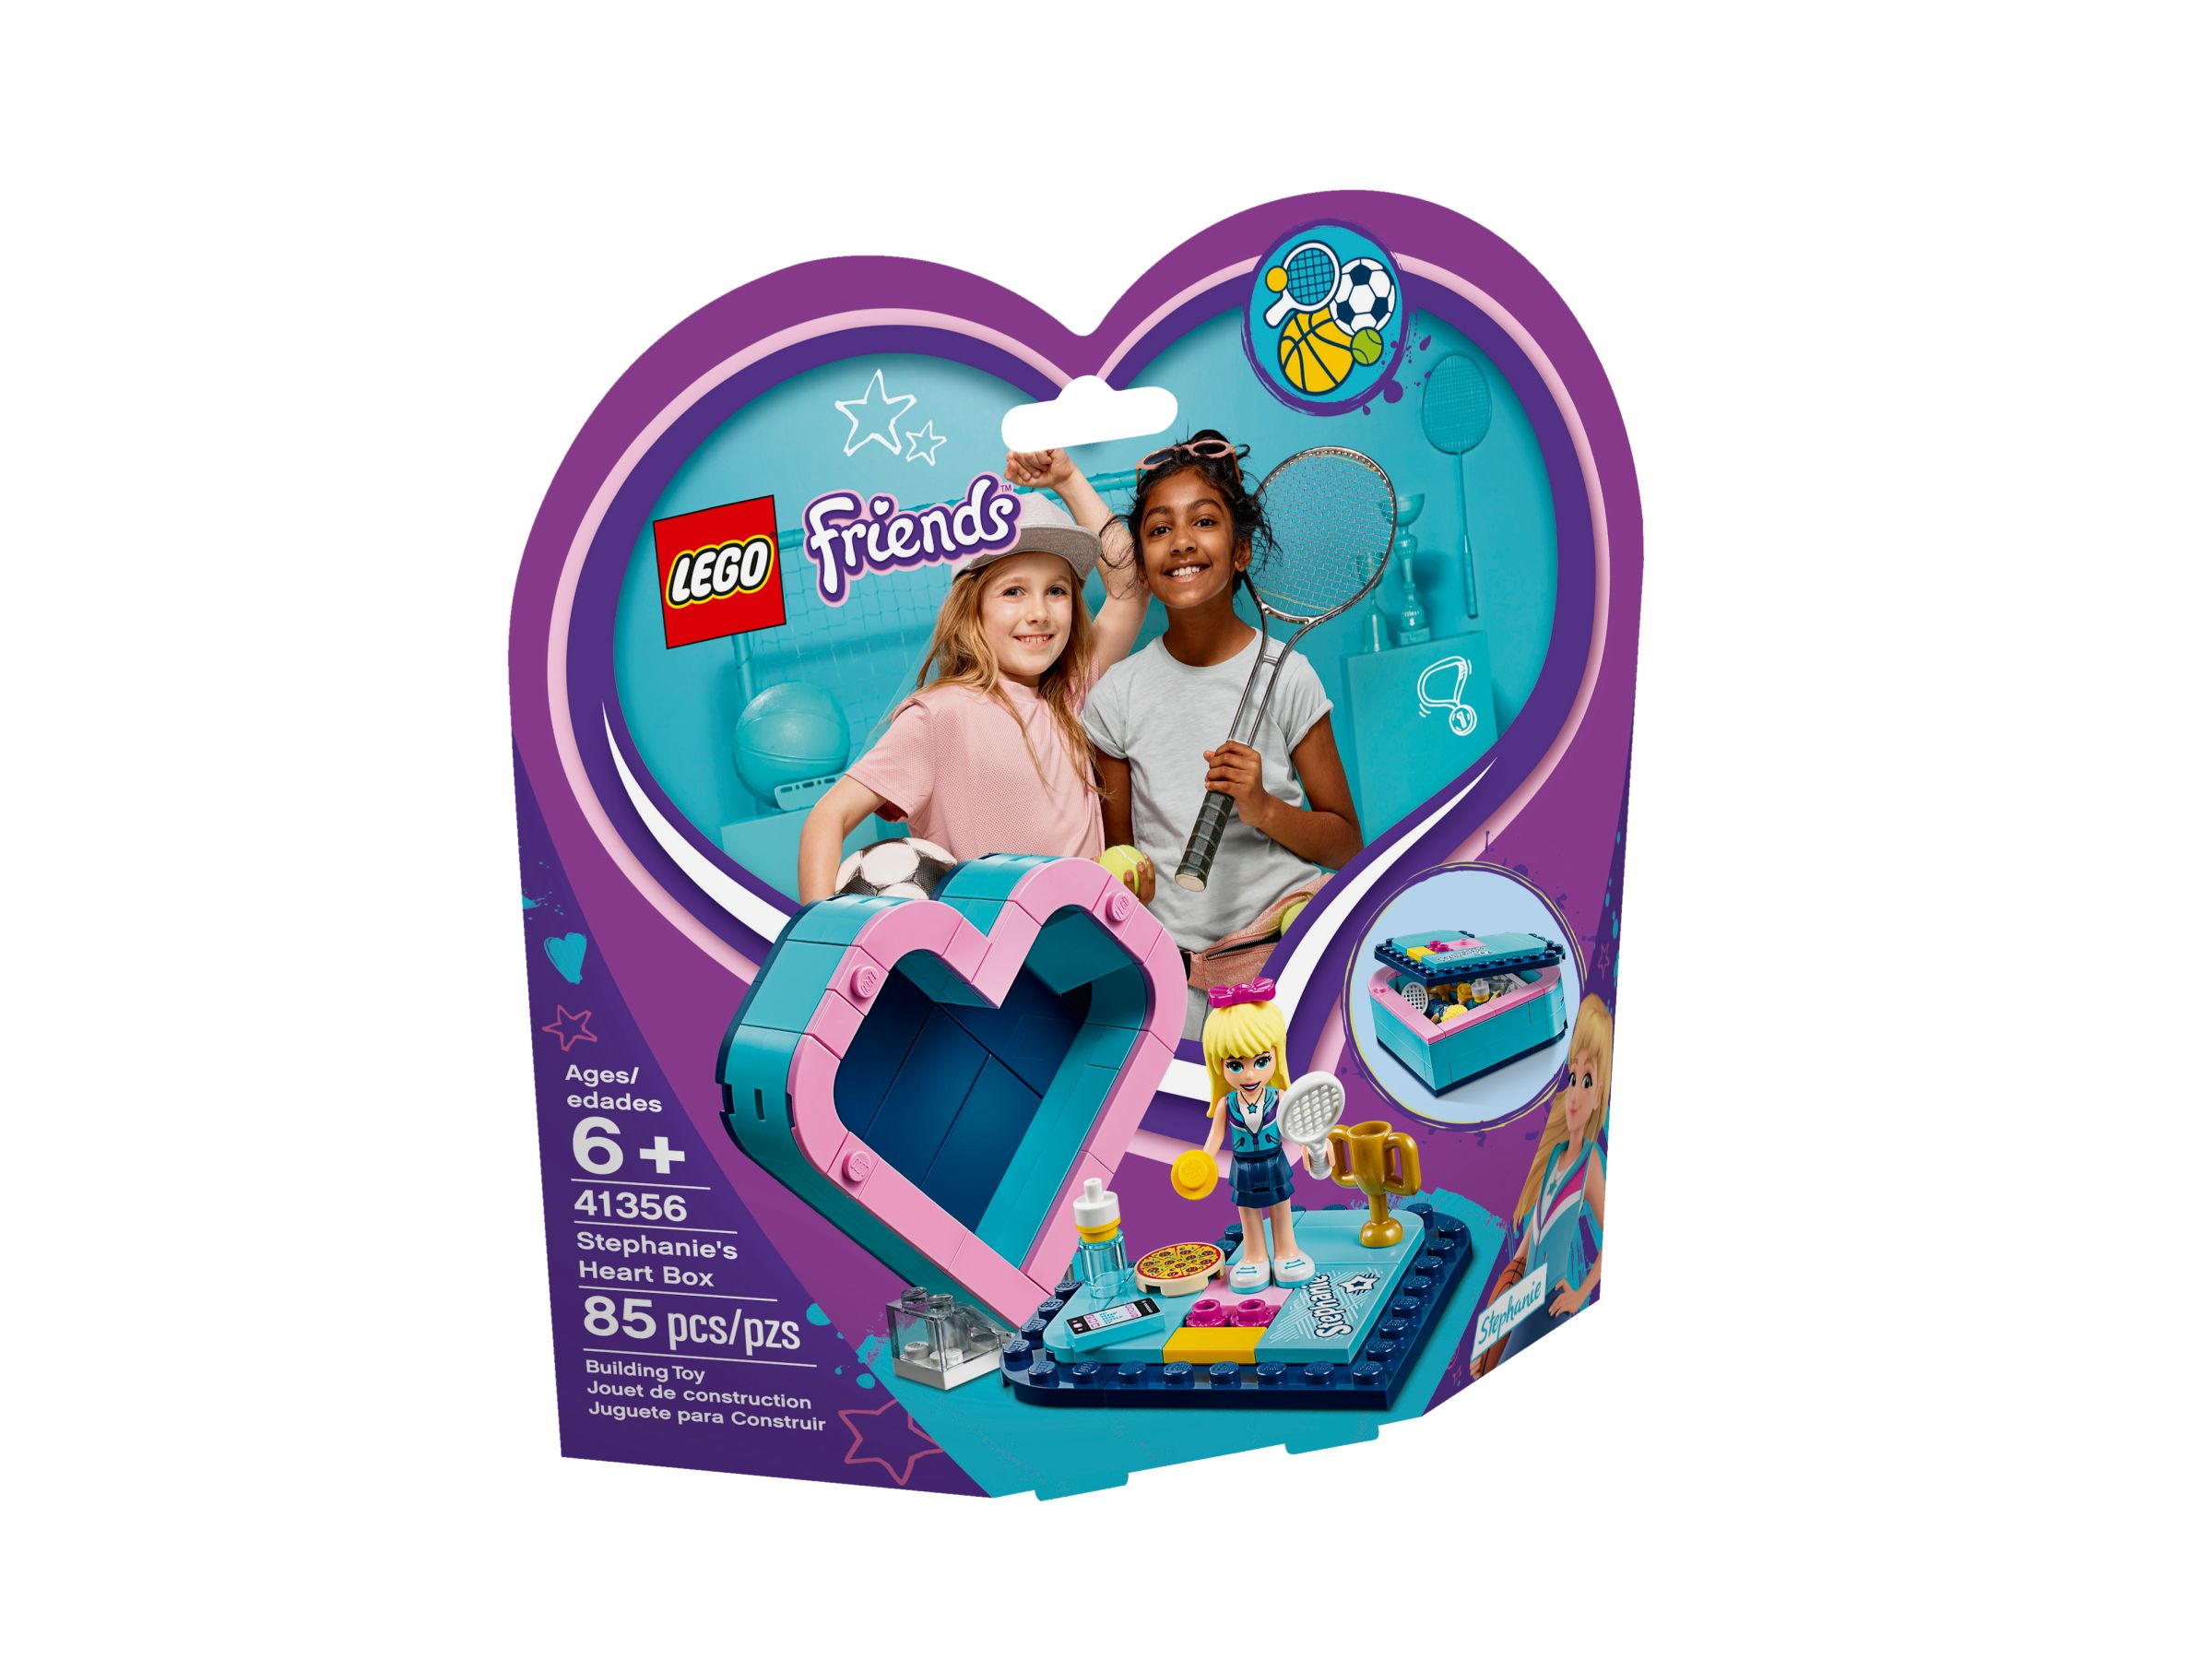 LEGO Friends 41356 Stephanies Herzbox LEGO_41356_alt1.jpg